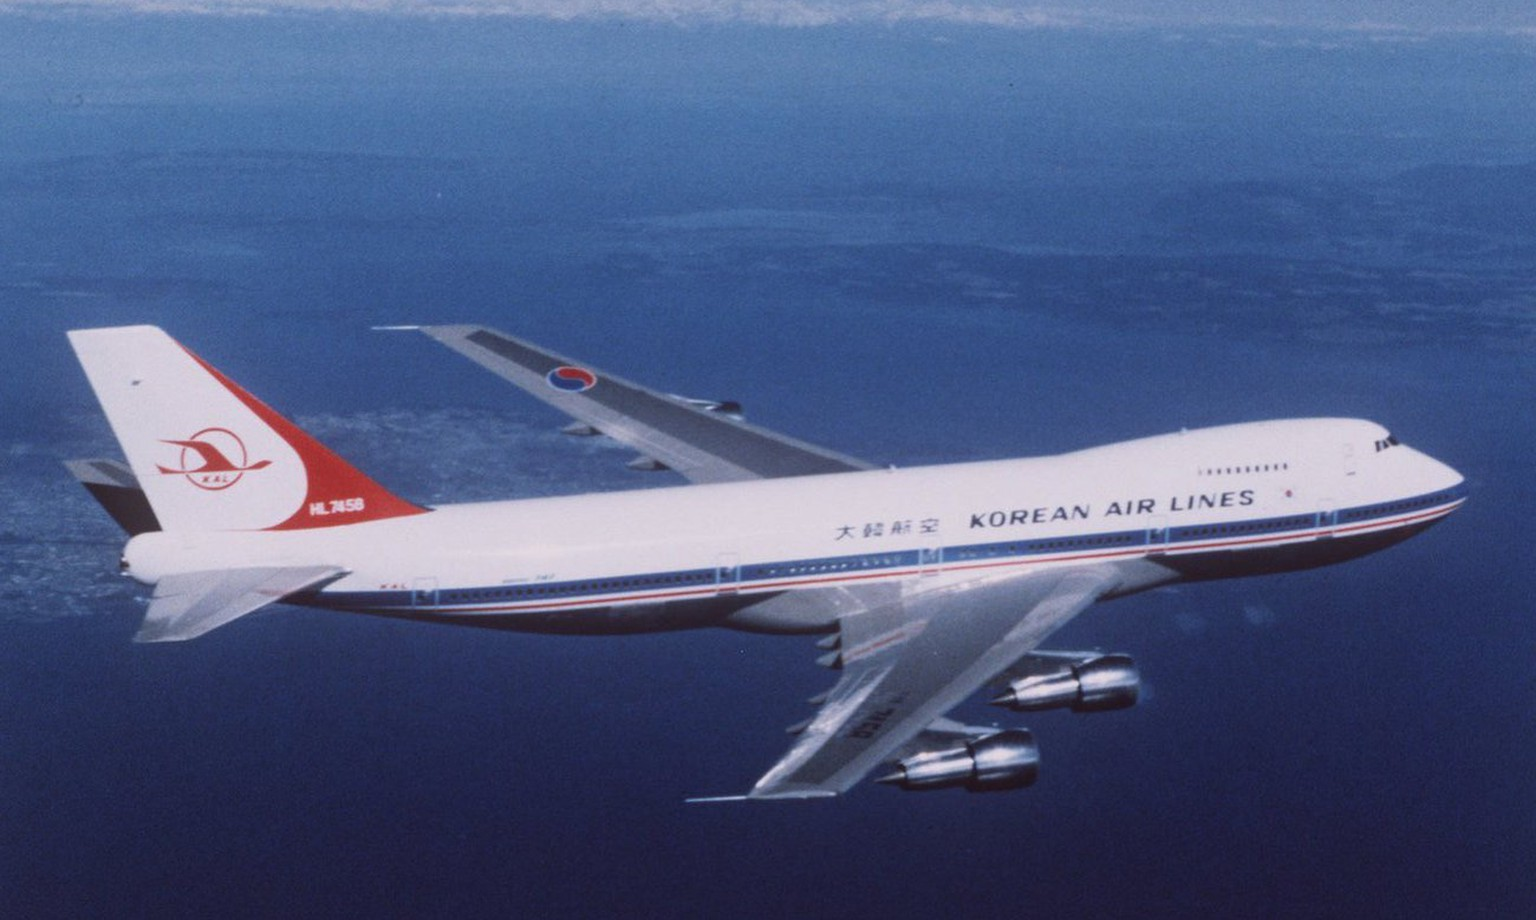 A Korean Air Boeing 747 jetliner, similar to the plane in this 1983 photo, with at least 231 people aboard crashed while trying to land on Guam in the middle of the night, authorities said Tuesday, August 5,1997. Police said 29 people survived. (KEYSTONE/AP Photo)